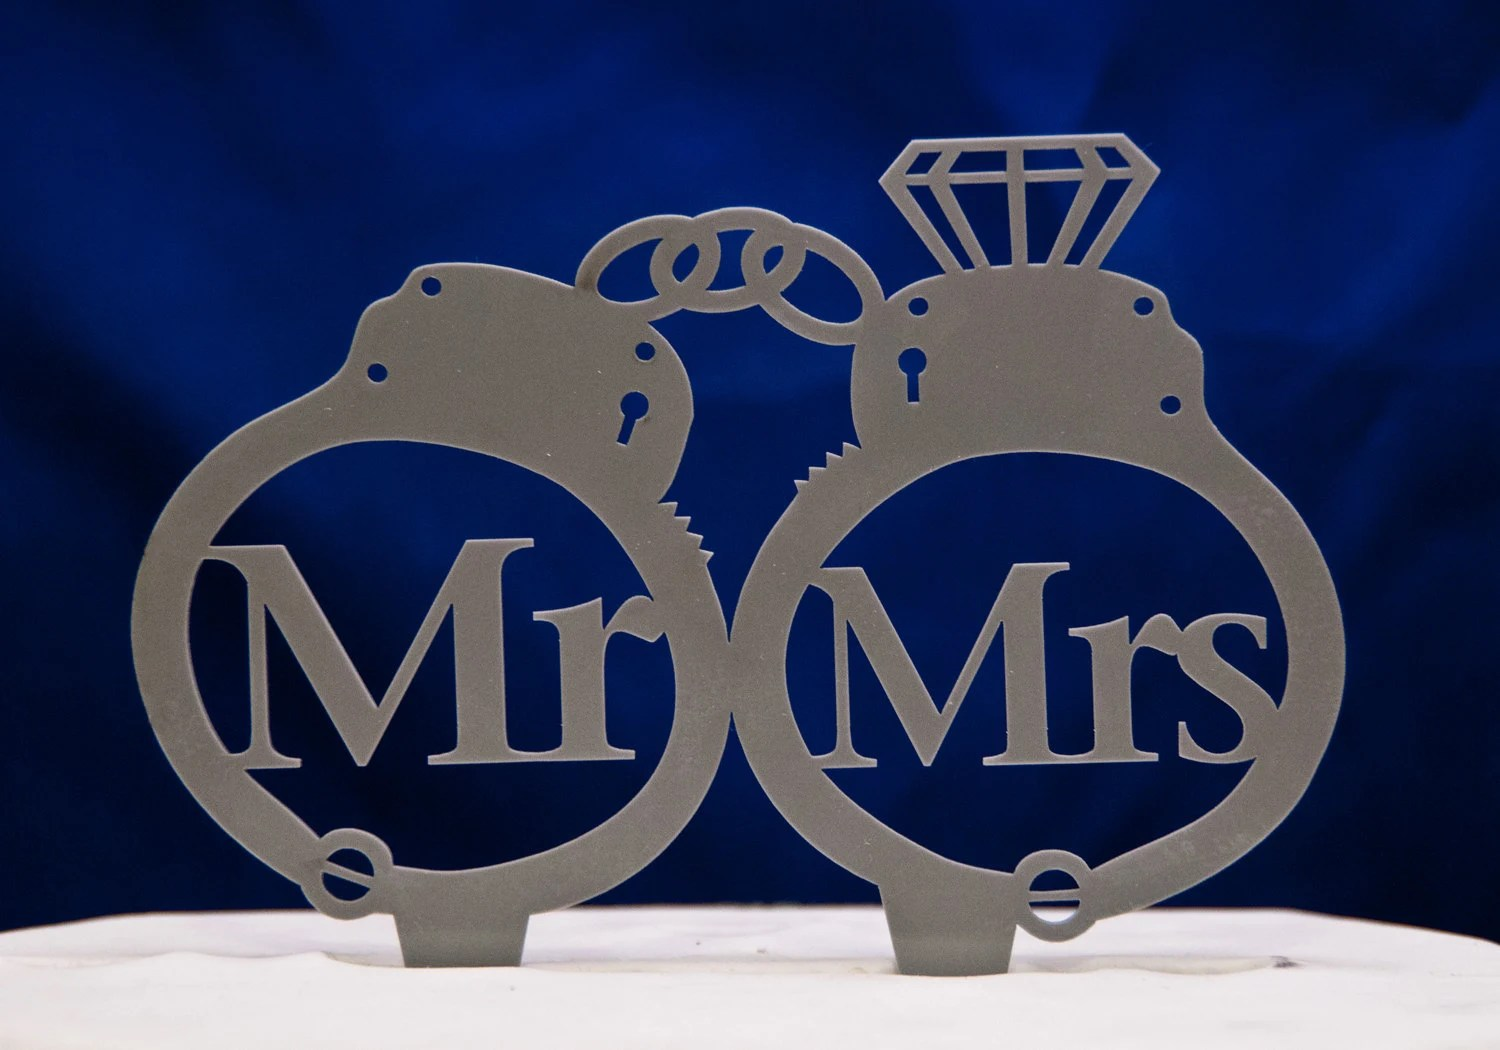 police wedding law enforcement wedding bands Handcuffs wedding cake topper Mr and Mrs inside handcuffs with diamond wedding cake topper police cake topper